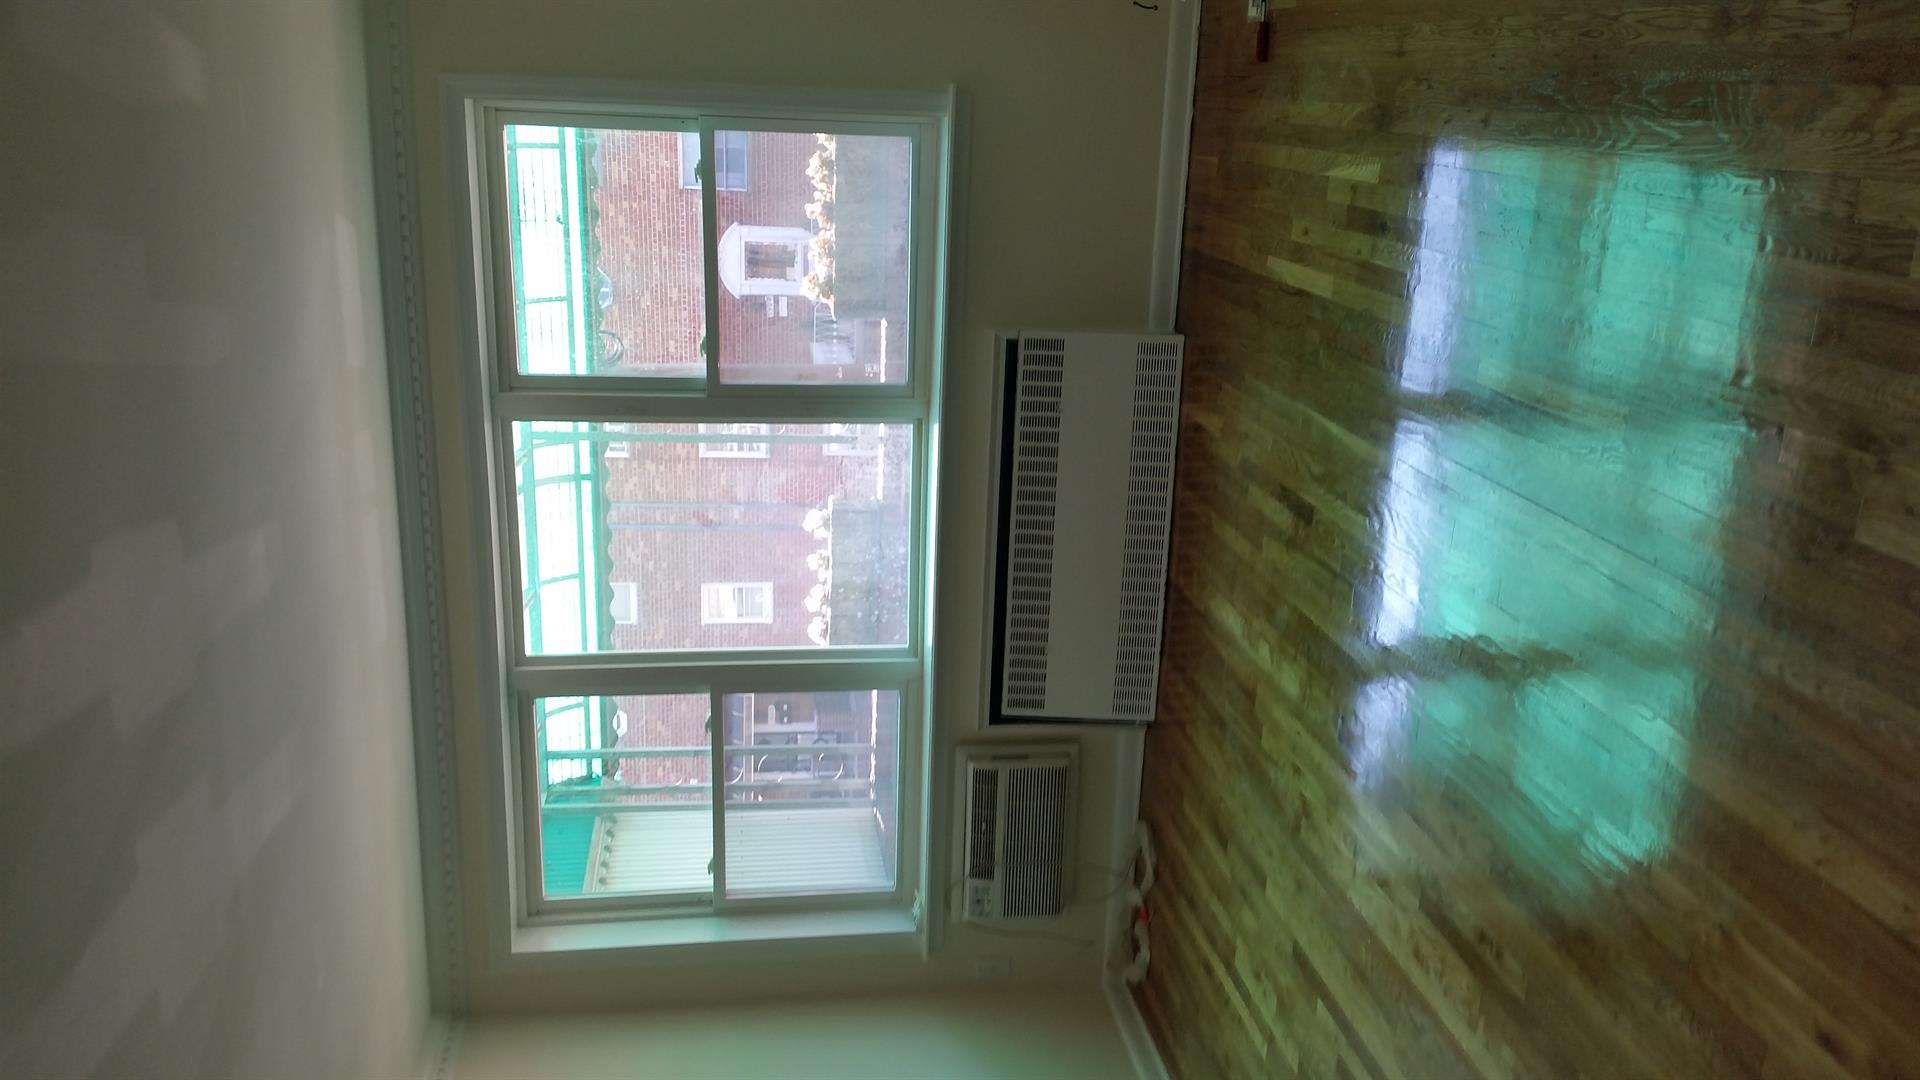 Additional photo for property listing at 1901 West 8th St  Brooklyn, New York 11223 United States